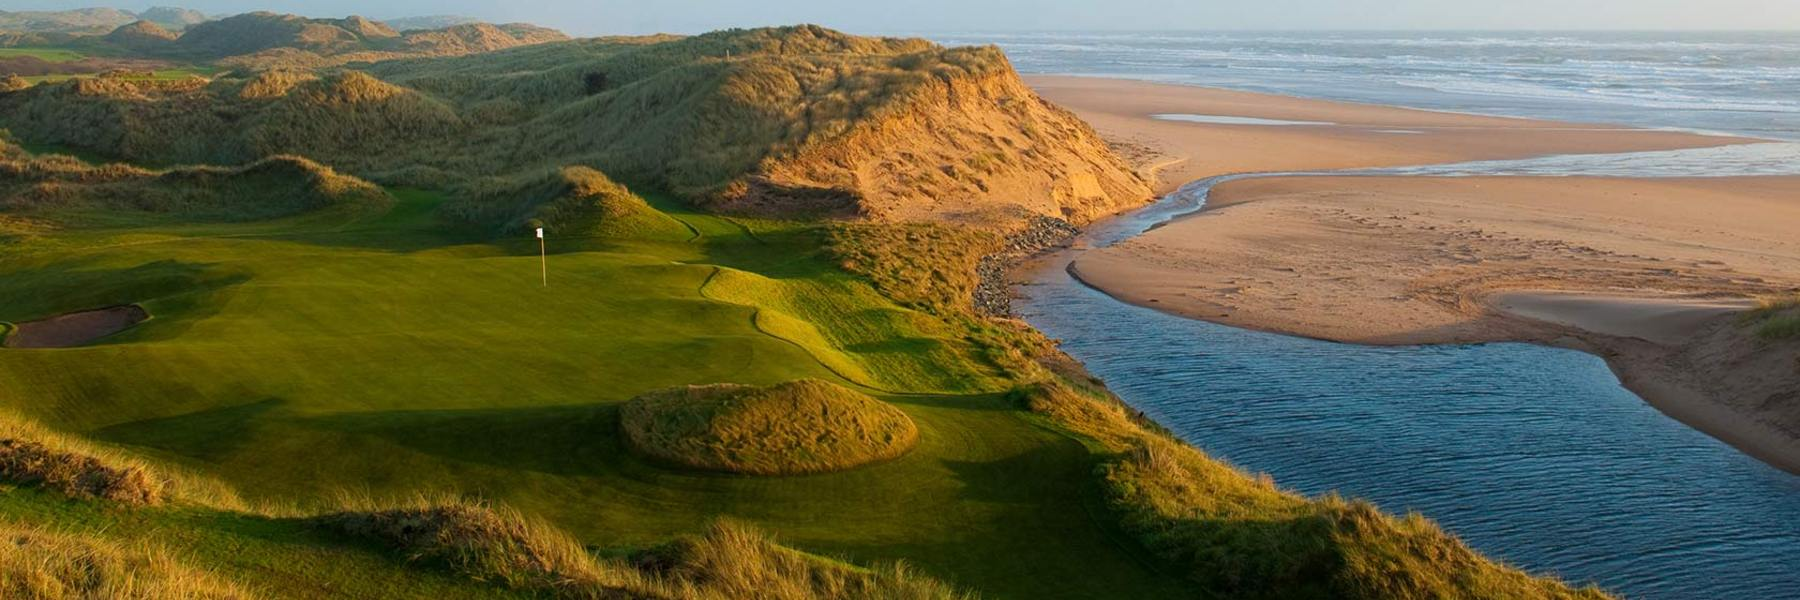 Golf Vacation Package - Scottish Highlands Summertime Special - 6 Nights + 5 Rounds + Car for $2999!